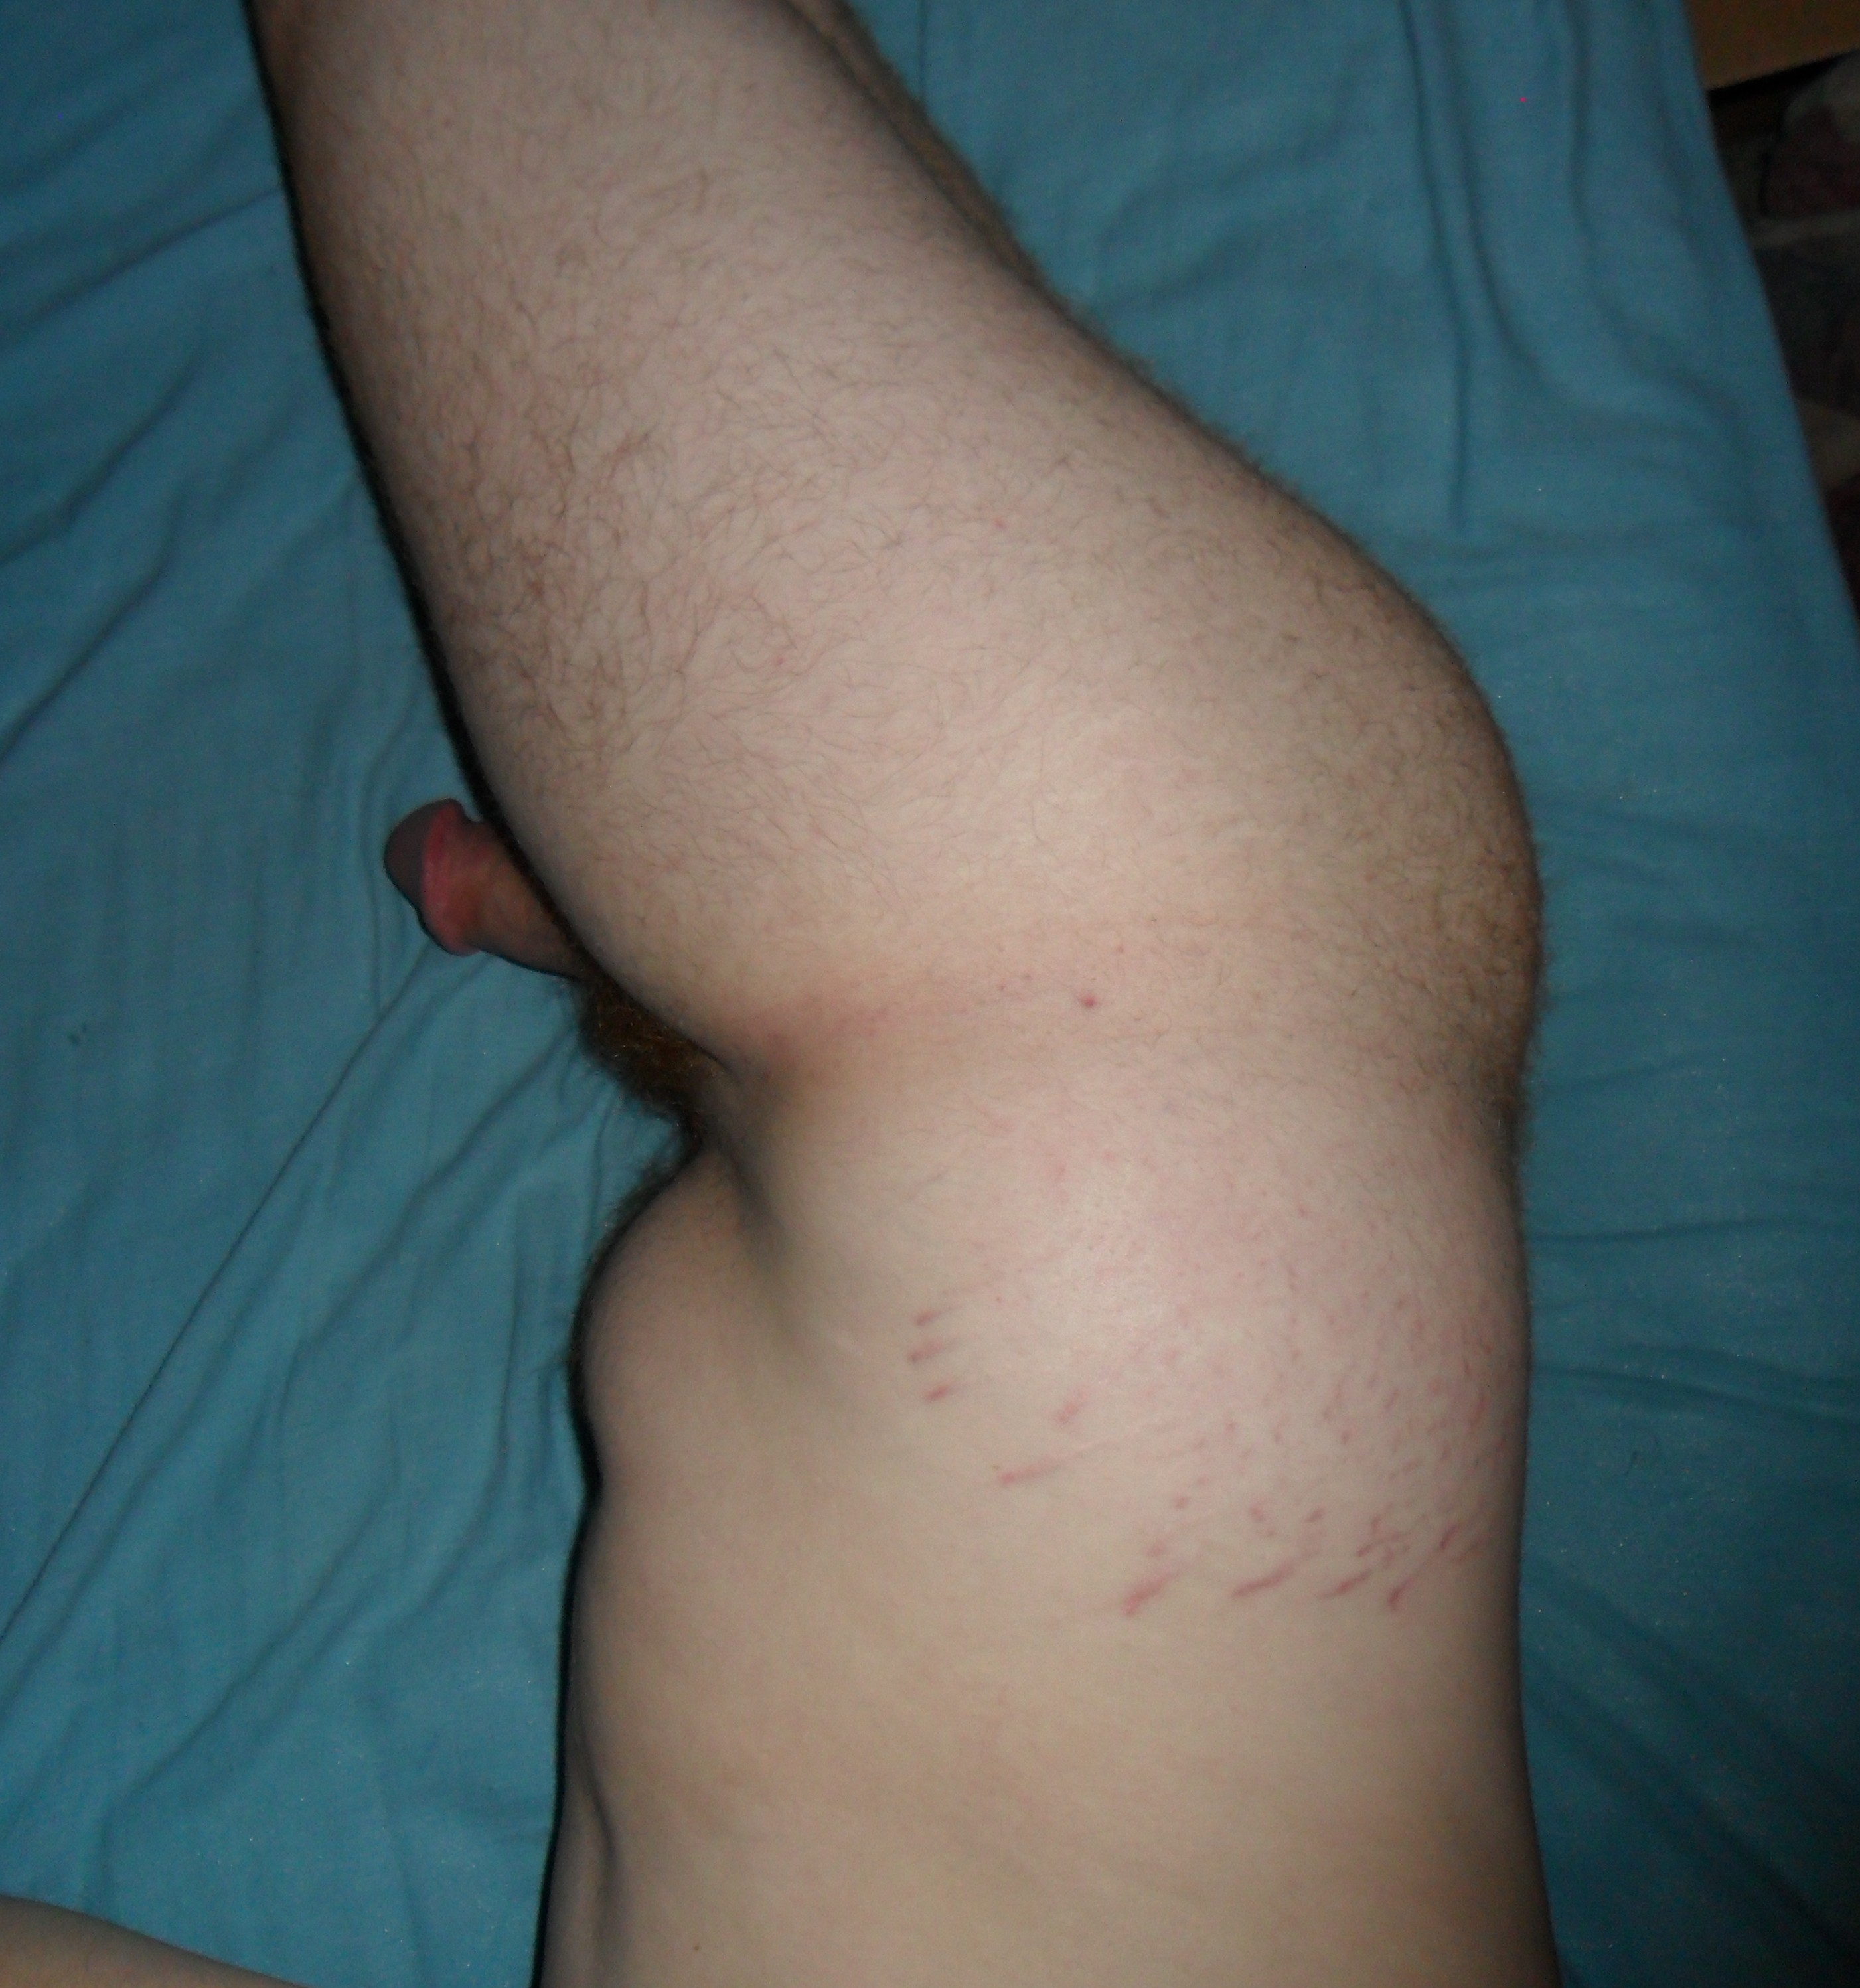 File:Stretch marks 1.jpg